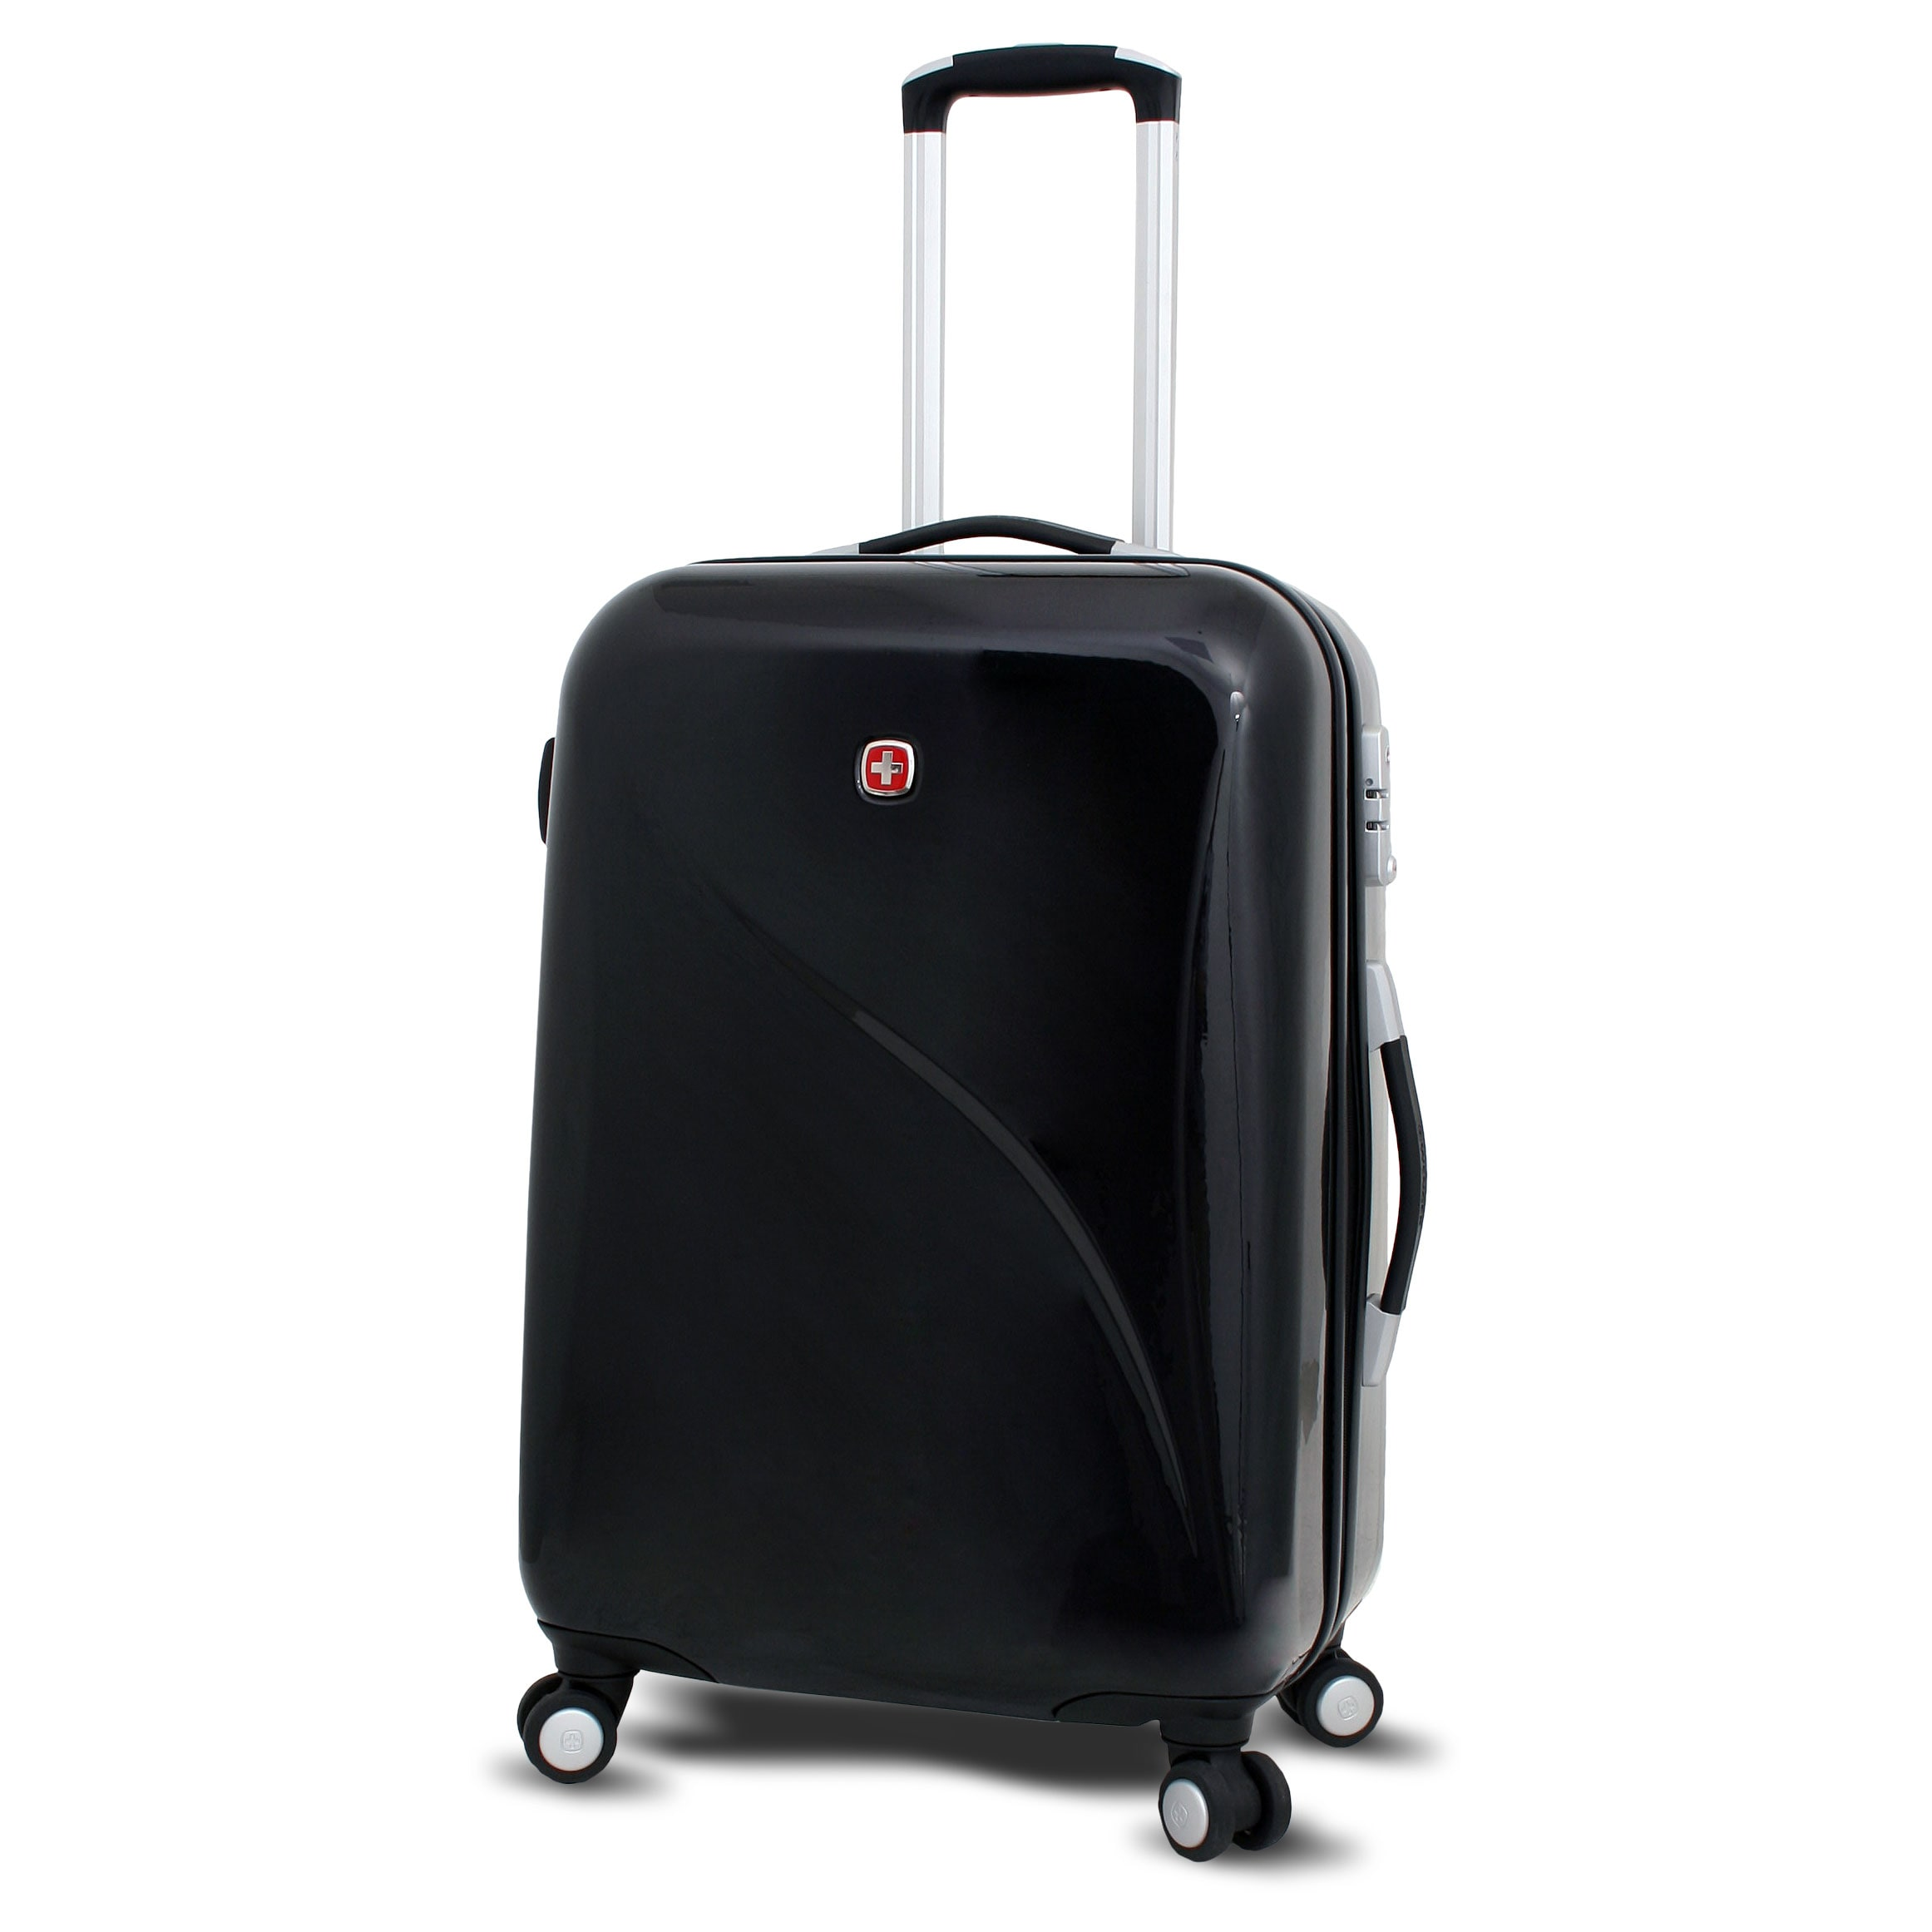 13a0ae206 Shop Wenger Swiss Gear Deluxe 24-inch Hardside Spinner Upright Suitcase  -Free Shipping Today